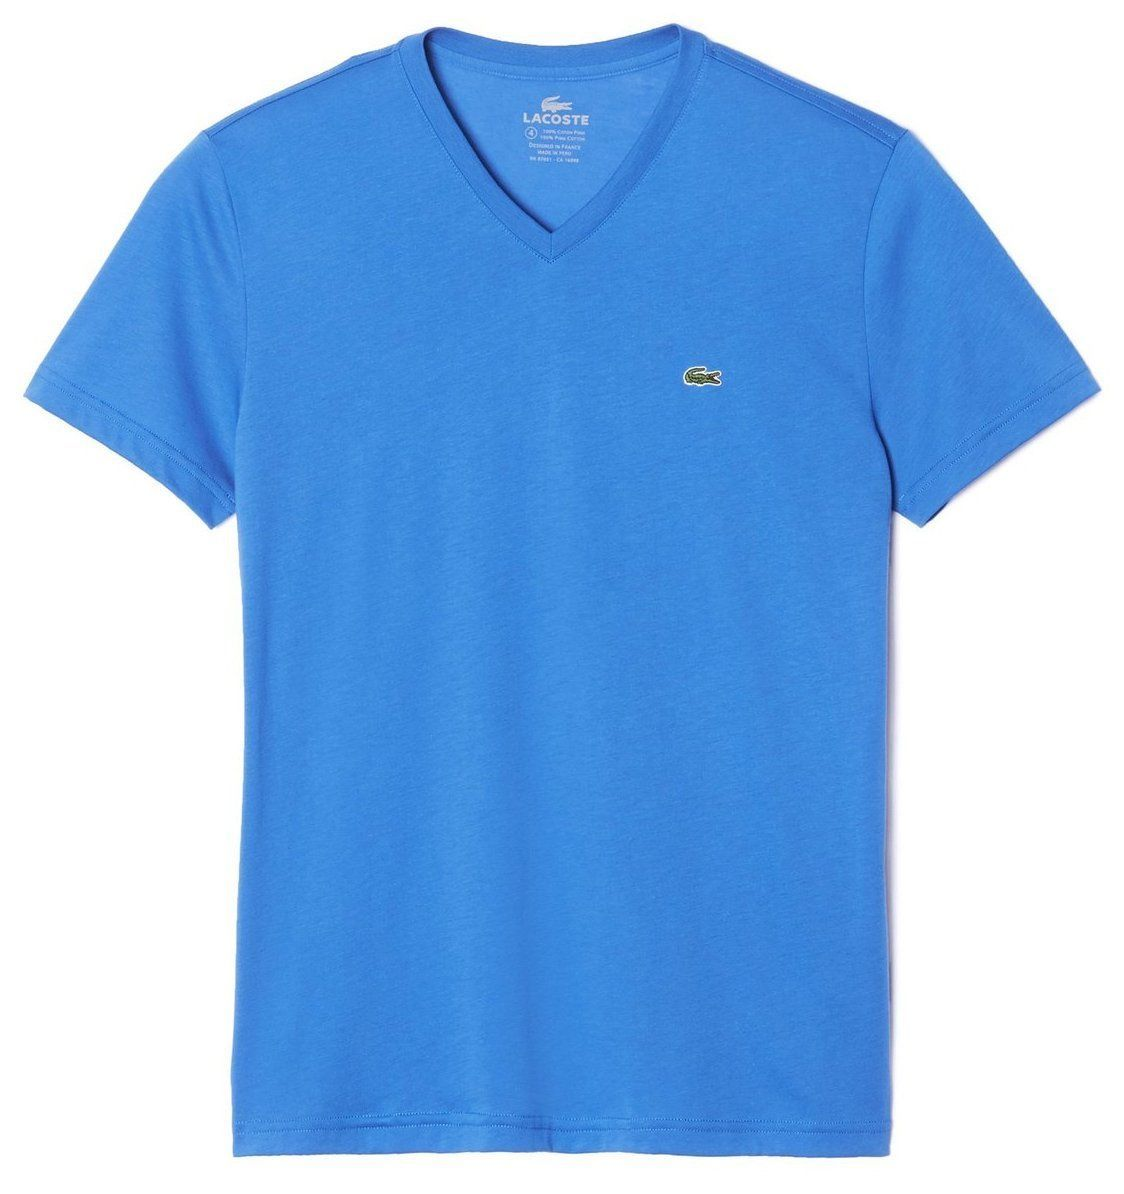 NEW LACOSTE MEN'S SPORT ATHLETIC PIMA COTTON V-NECK SHIRT T-SHIRT WEST INDIES